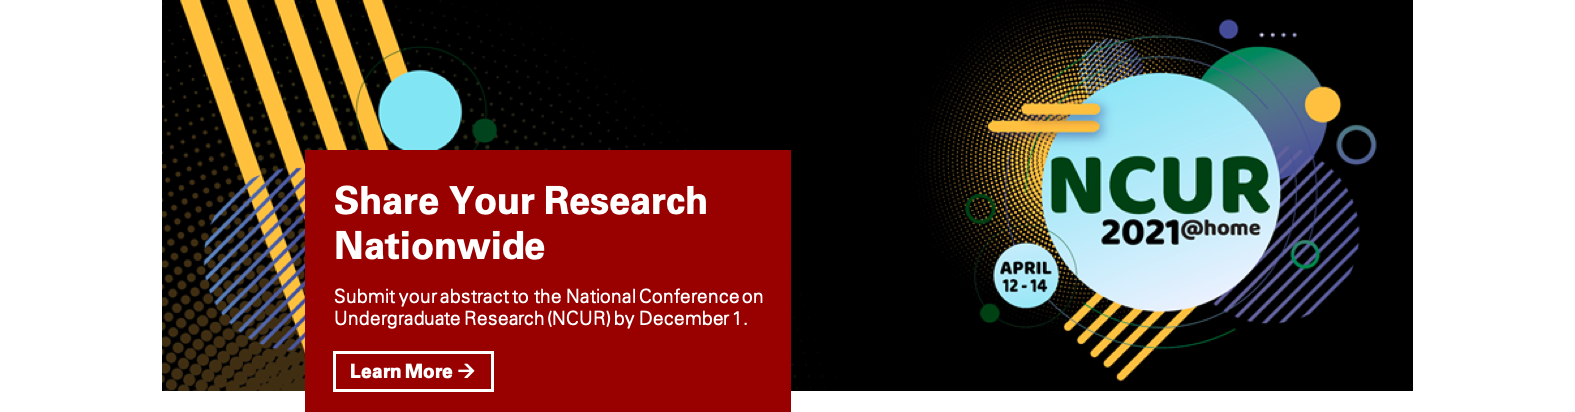 Share Your Research Nationwide: Submit your abstract to the National Conference on Undergraduate Research (NCUR) by December 1.